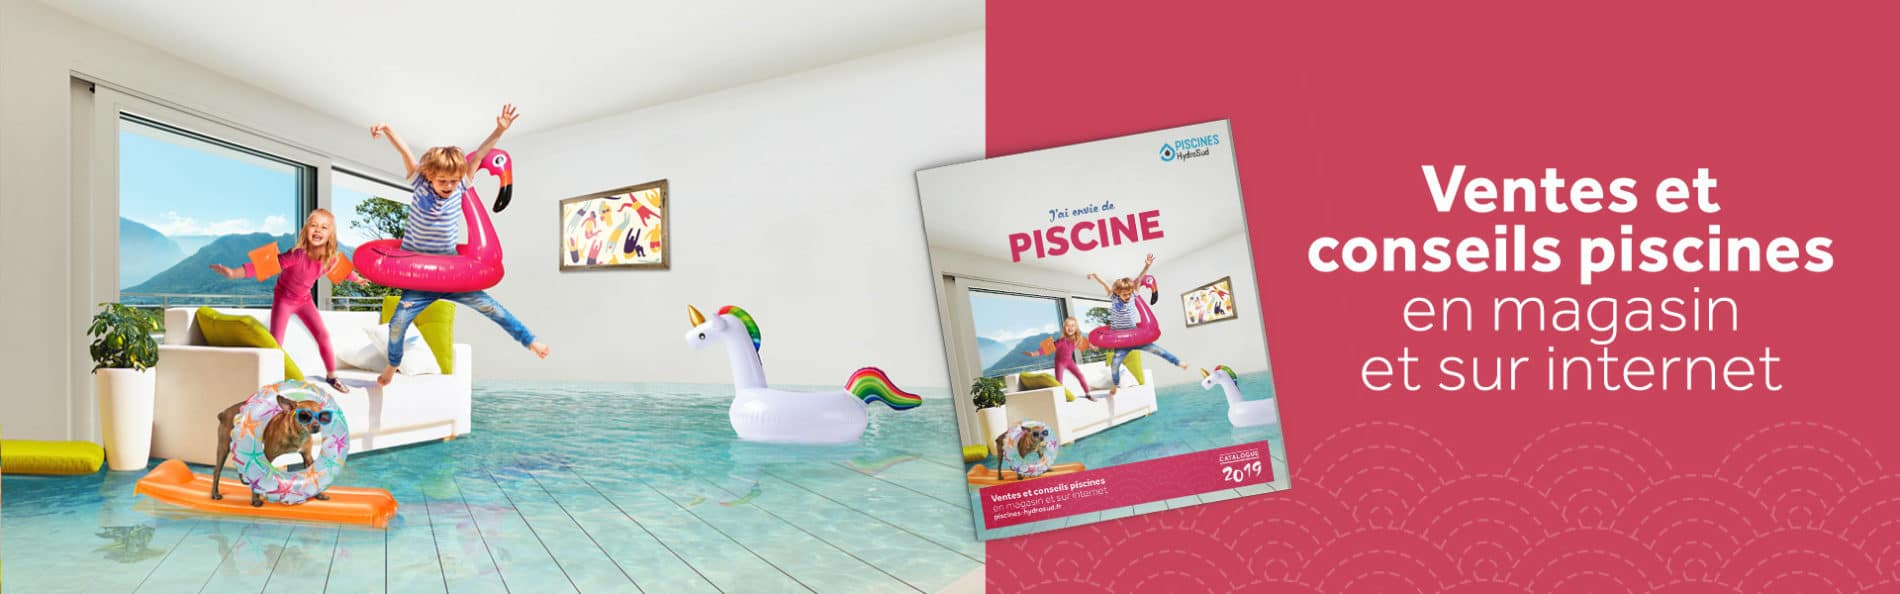 Magasin Bricolage Chambery Cholat Jardins Hydro Sud Chambéry Idées Piscine